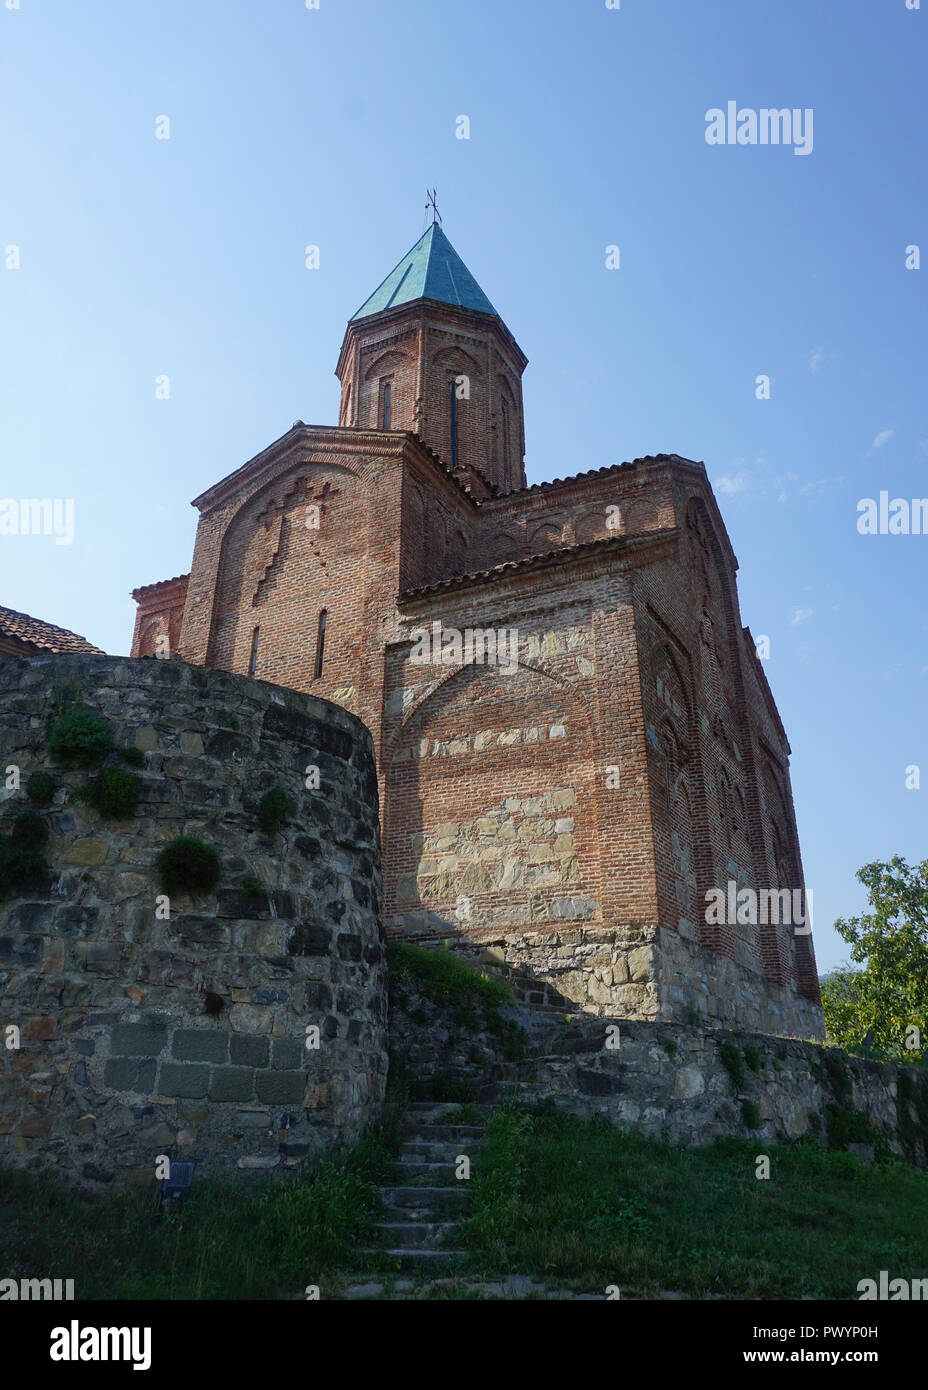 Gremi Monastery Church View with Stairs Wall and Blue Sky - Stock Image